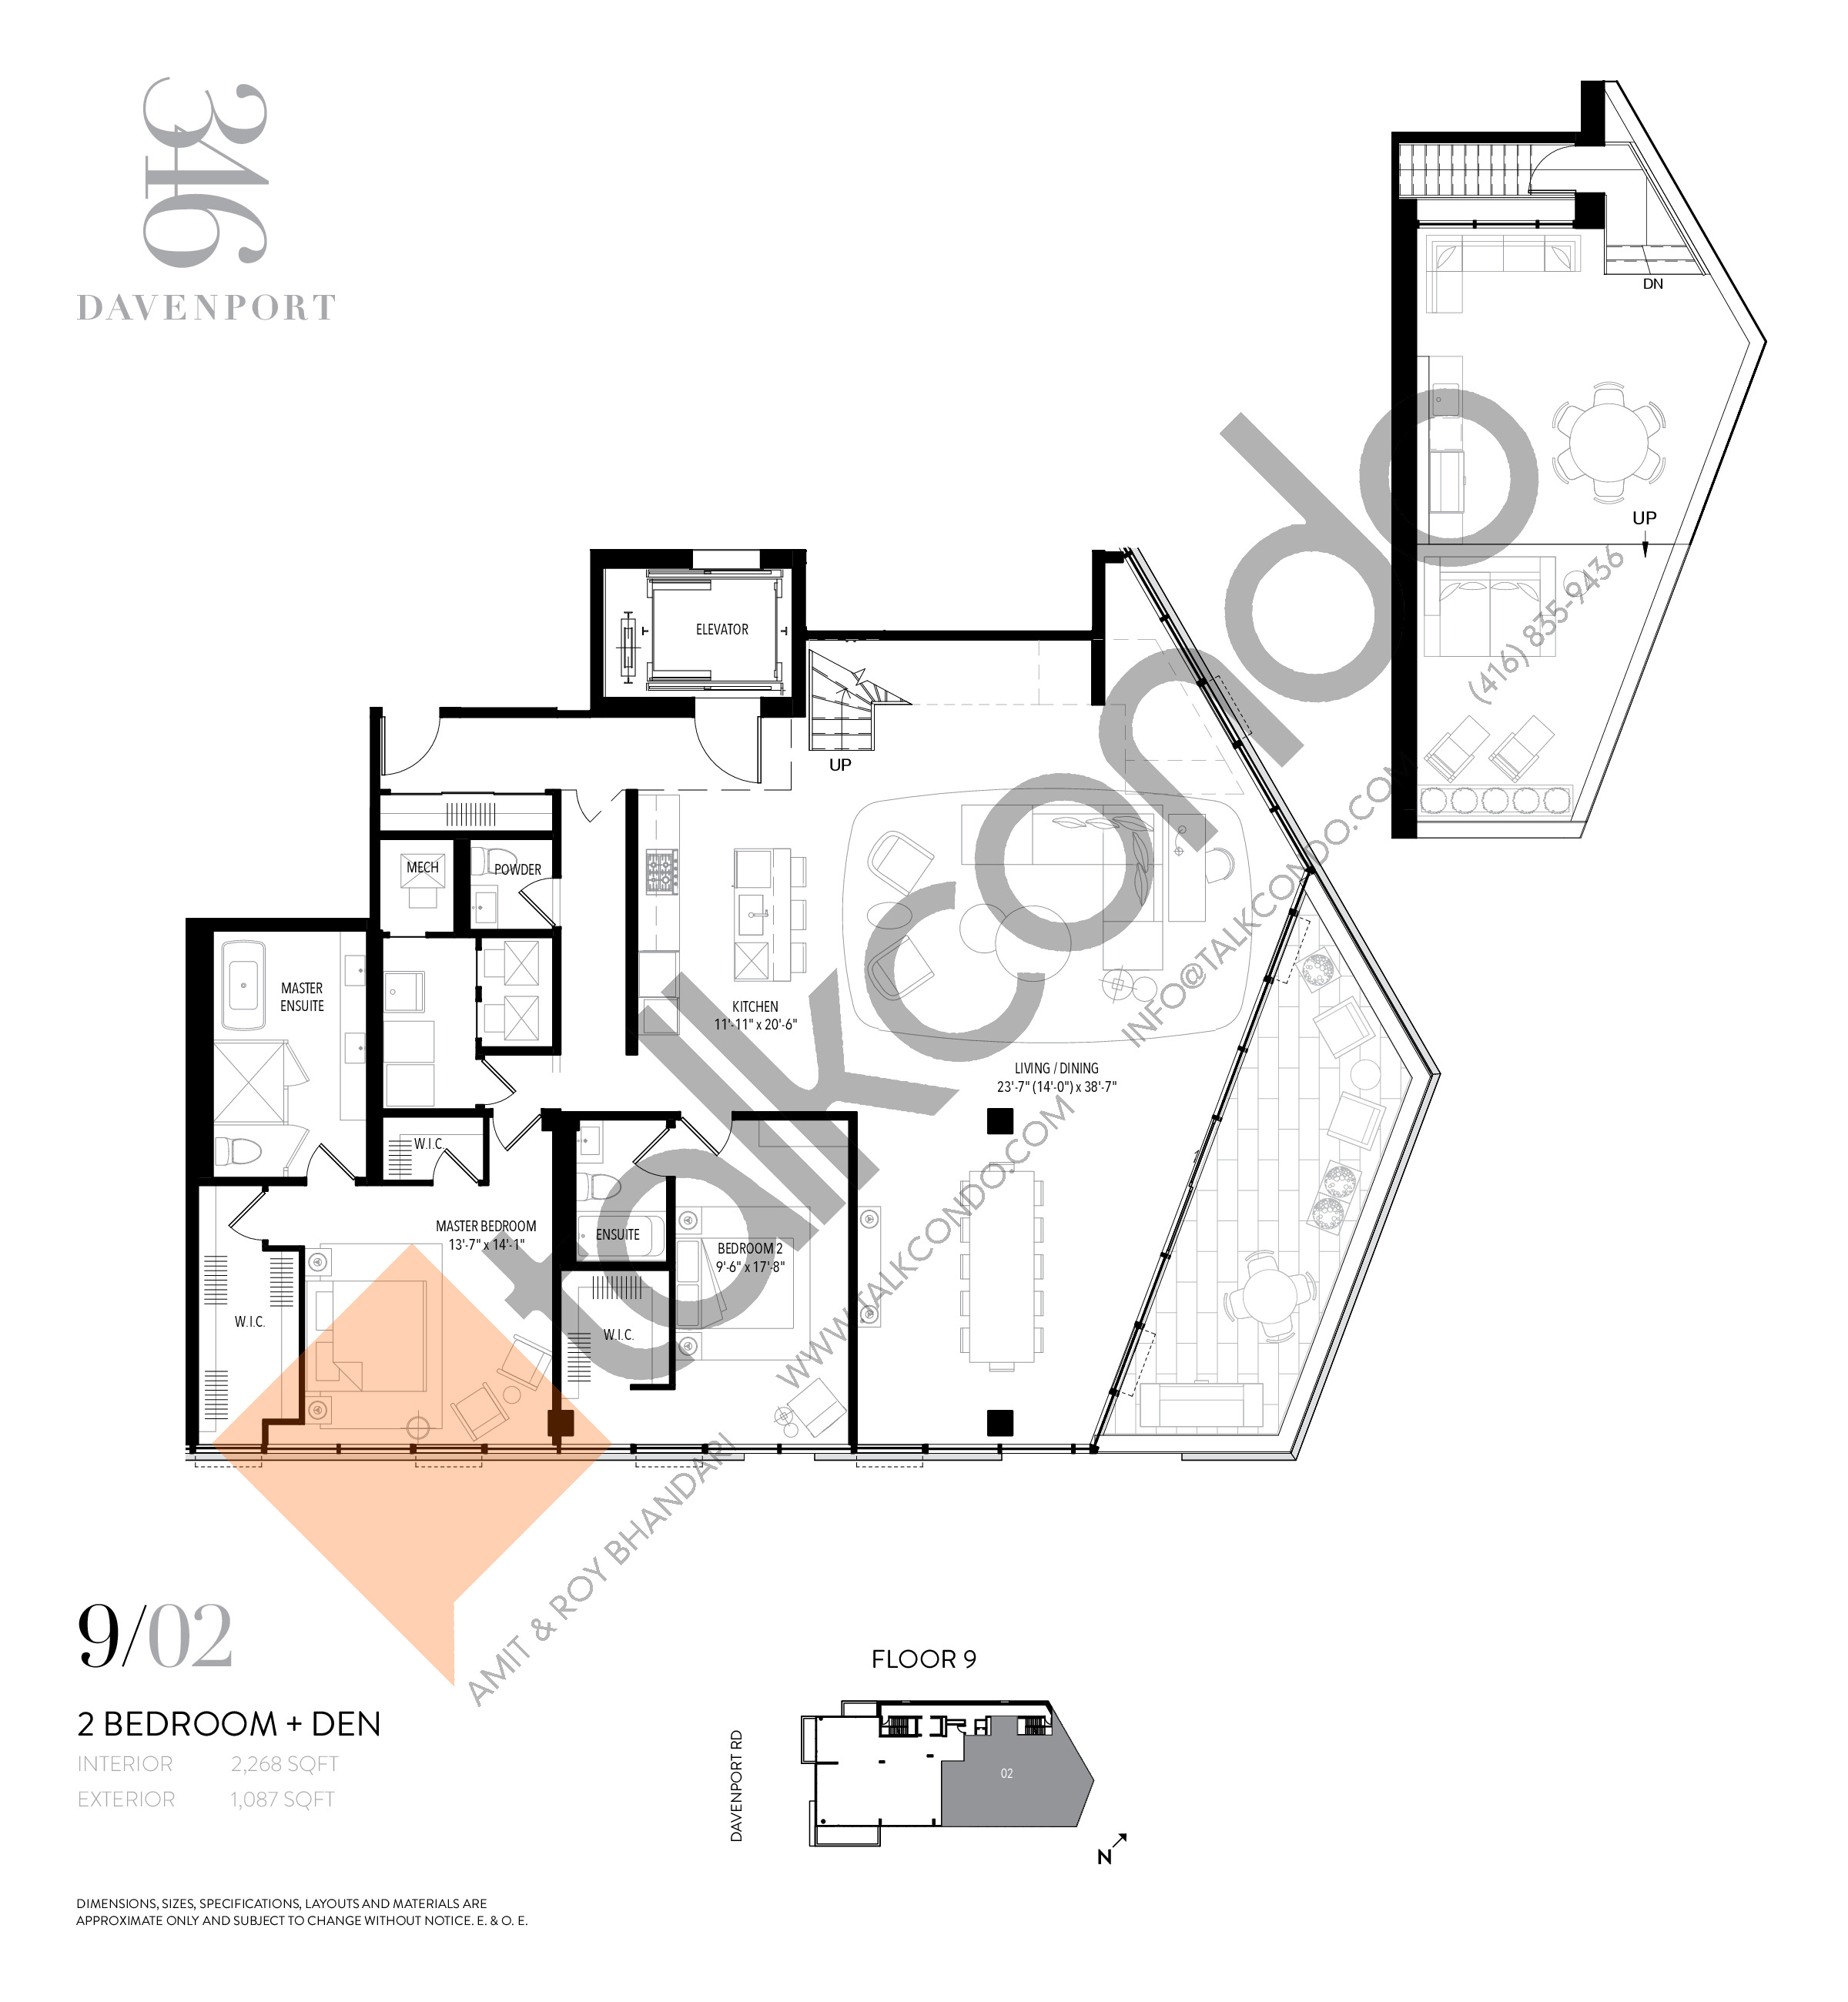 Unit 902 Floor Plan at 346 Davenport Condos - 2268 sq.ft